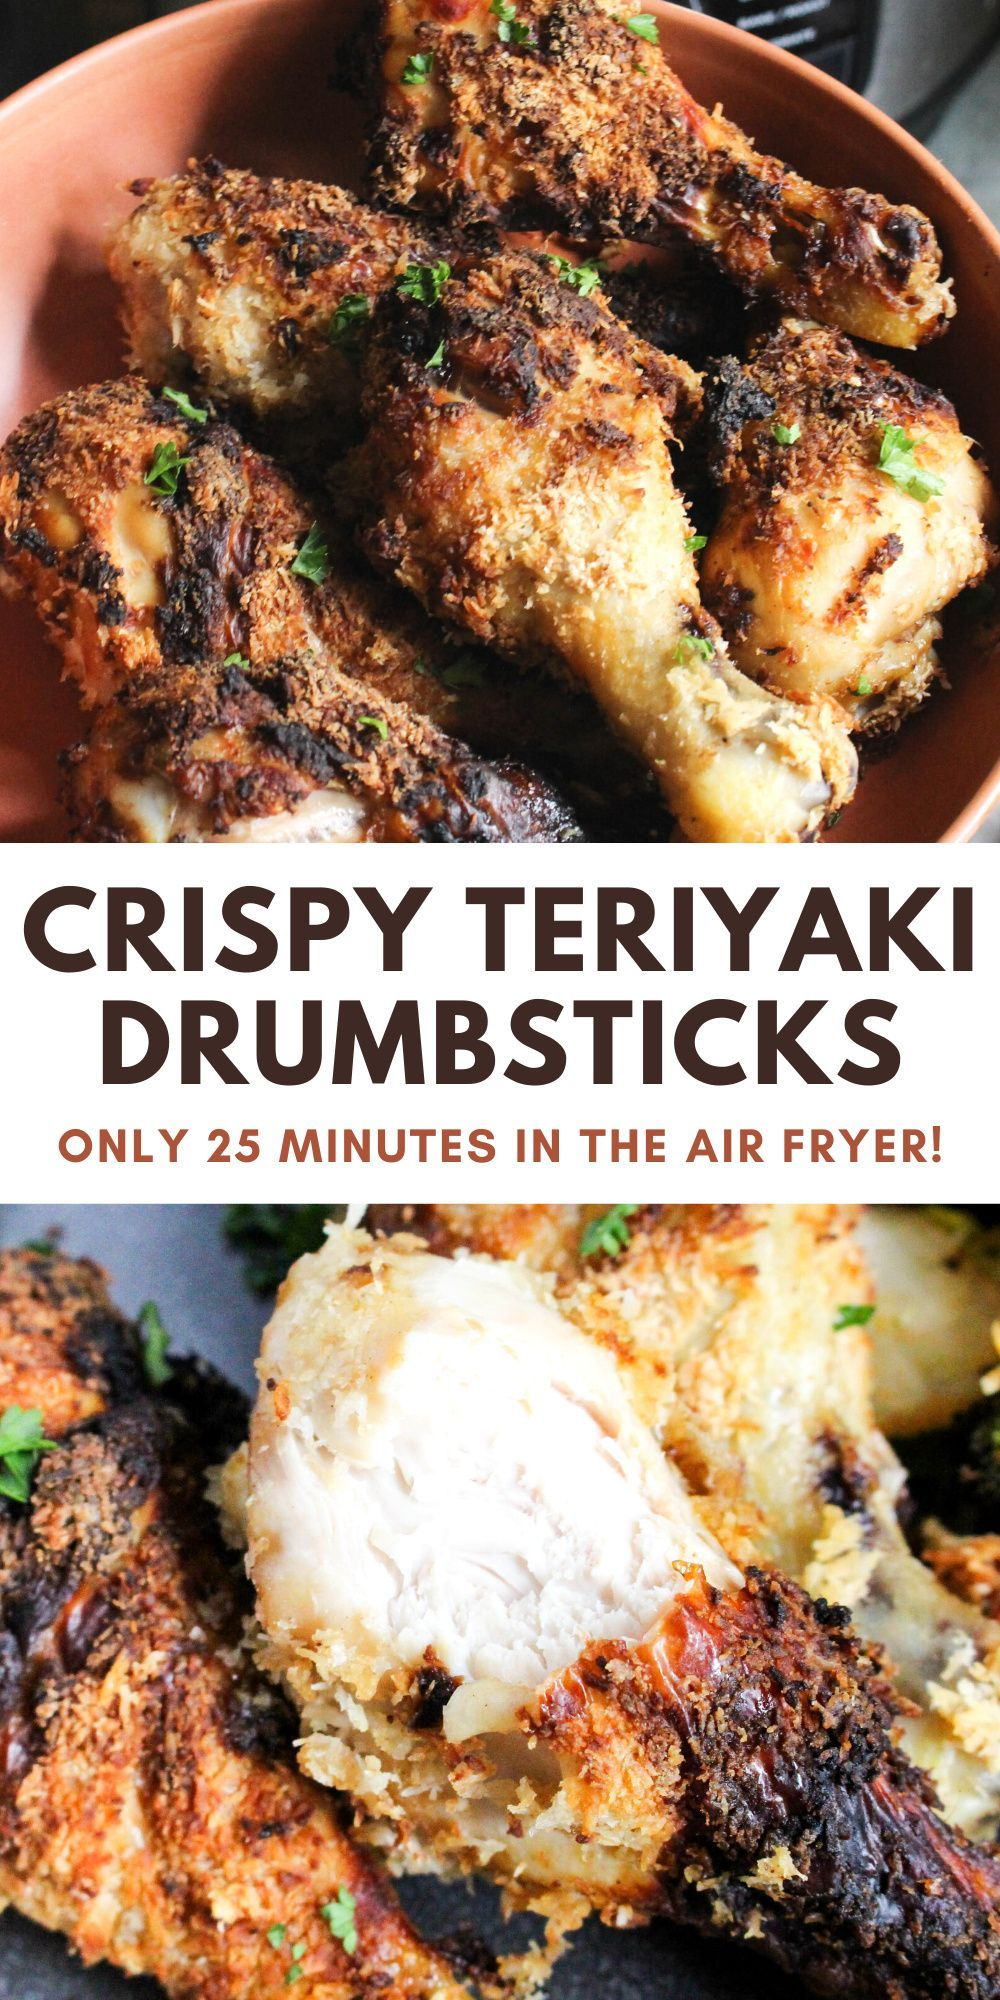 These Crispy Teriyaki Chicken Wings only take 25 minutes to make in the air fryer! They're marinated in a whole30 approved teriyaki sauce, and rolled in a simple flour mixture! The best healthy chicken wings you'll ever try! #teriyakichicken #healthychicken #airfryerchickenwings